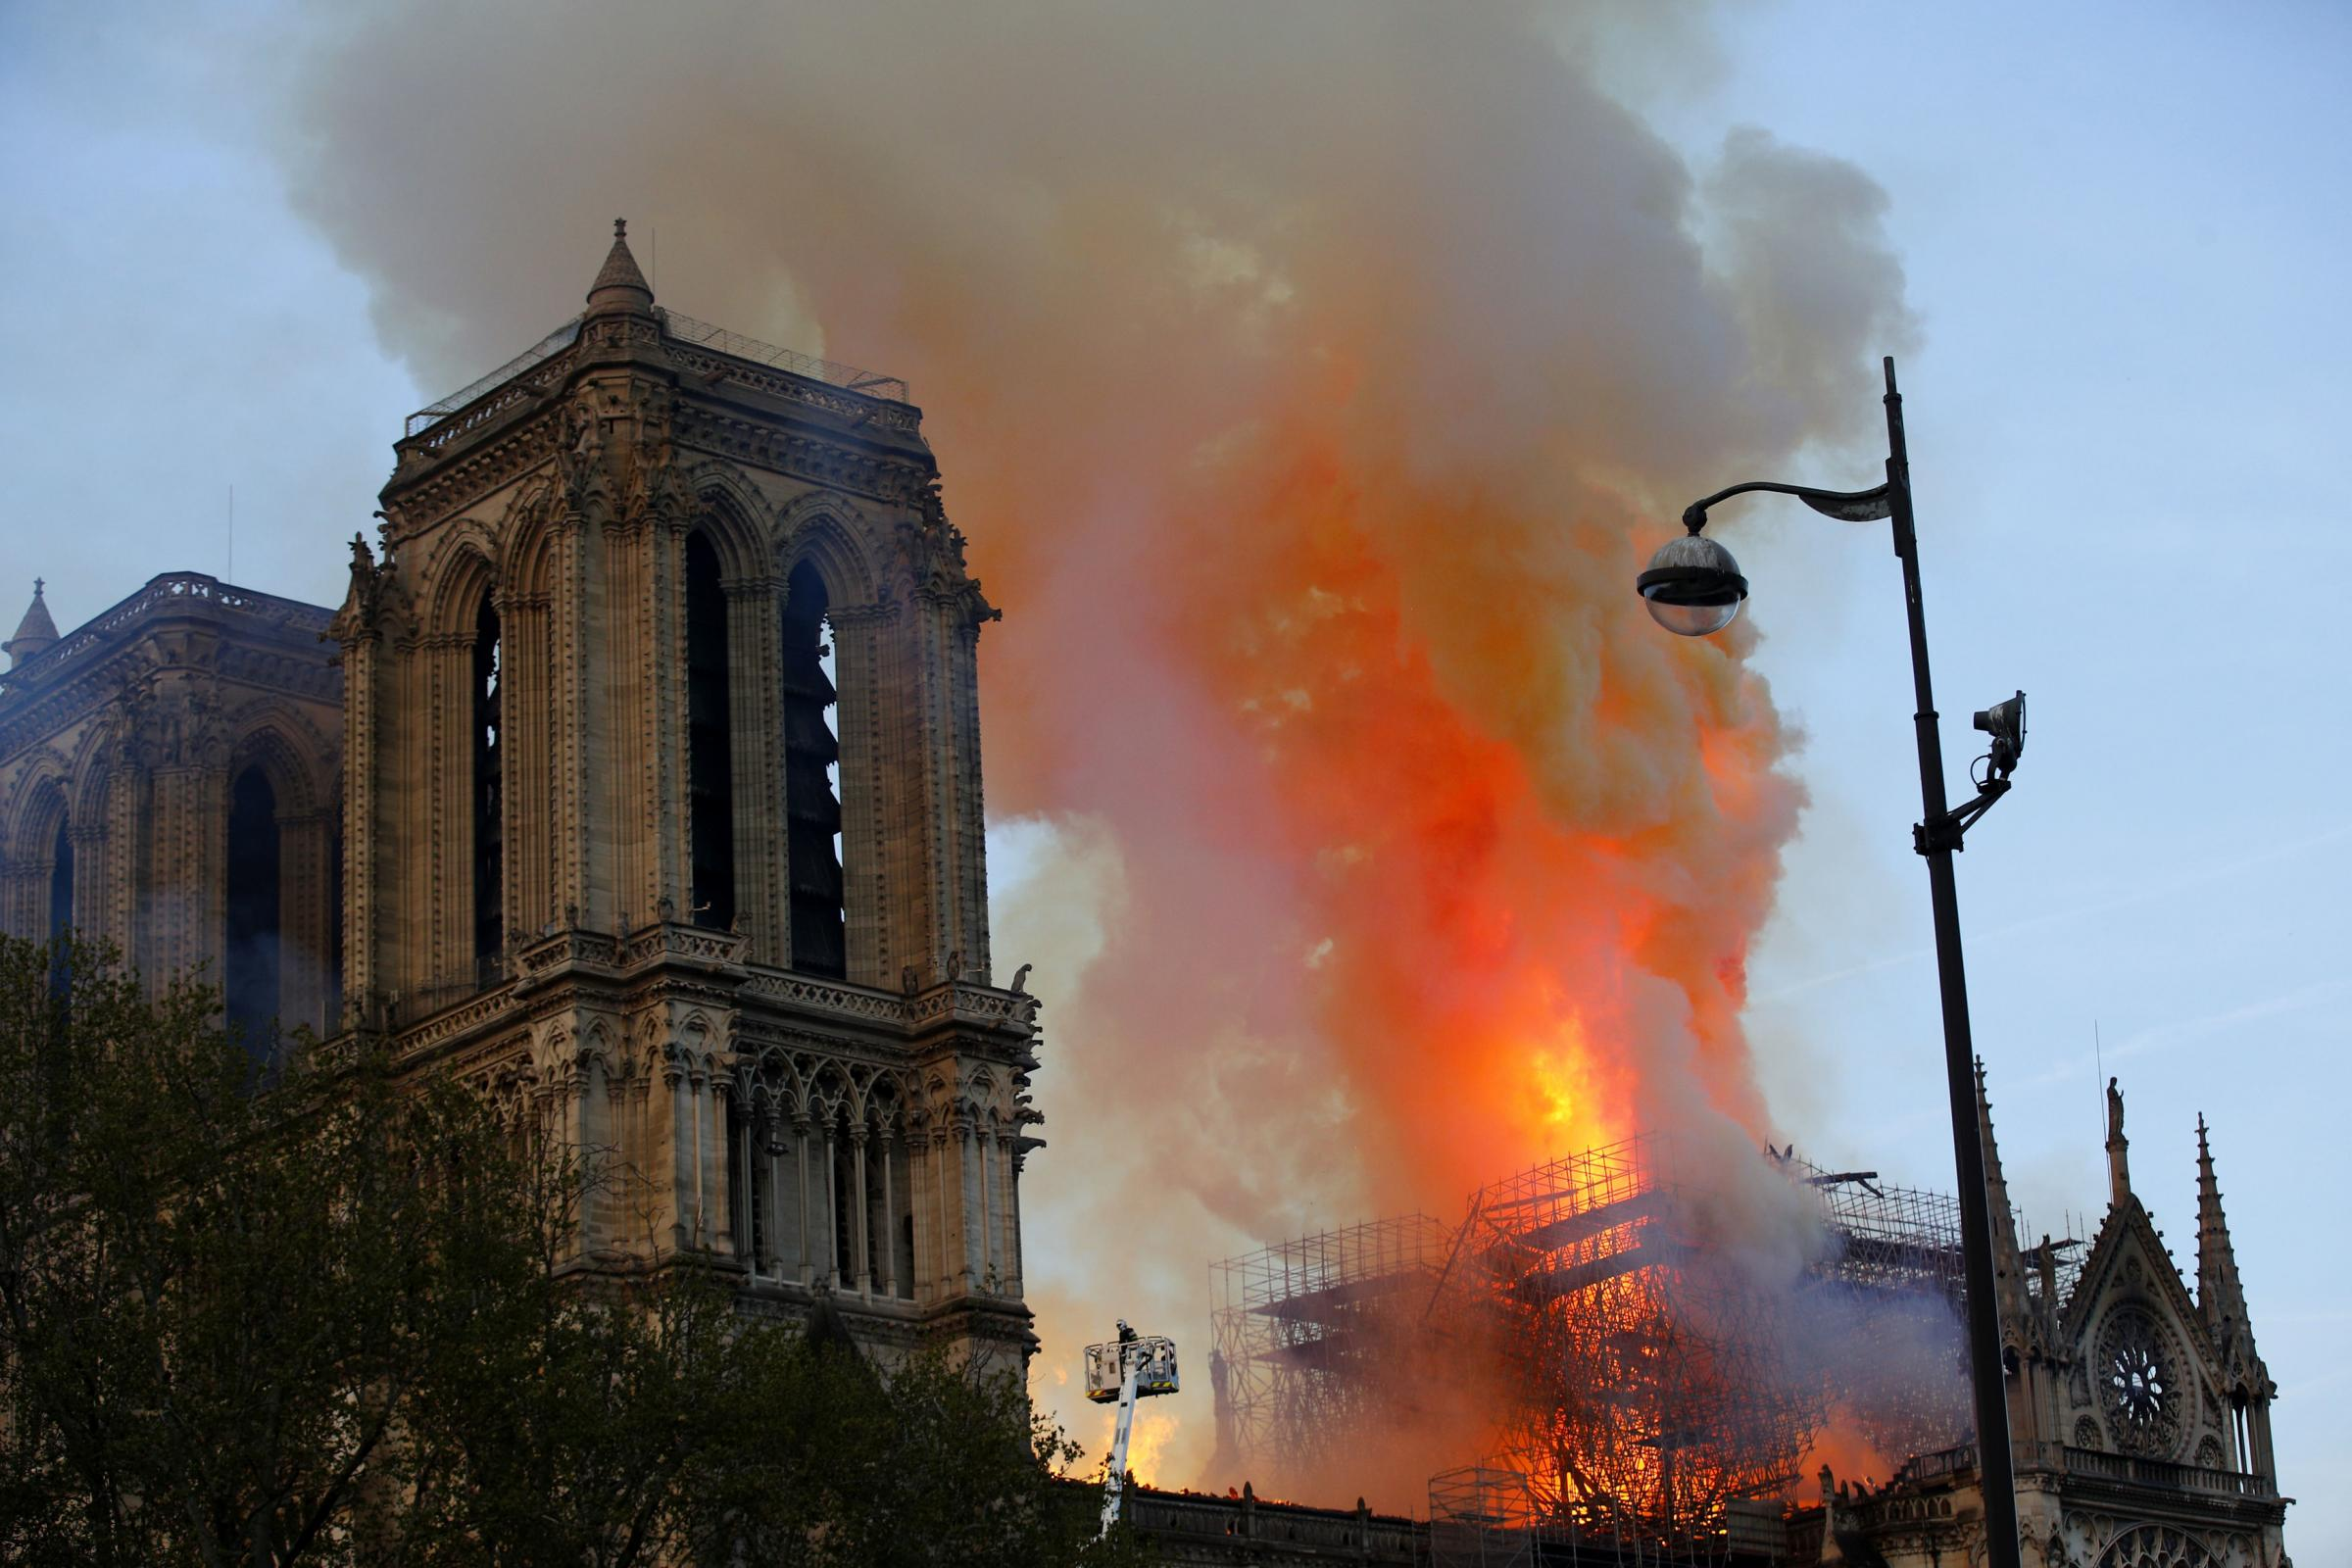 FIRE: Firefighters battle the fire at Notre Dame Cathdral in Paris on Monday. Picture: AP Photo